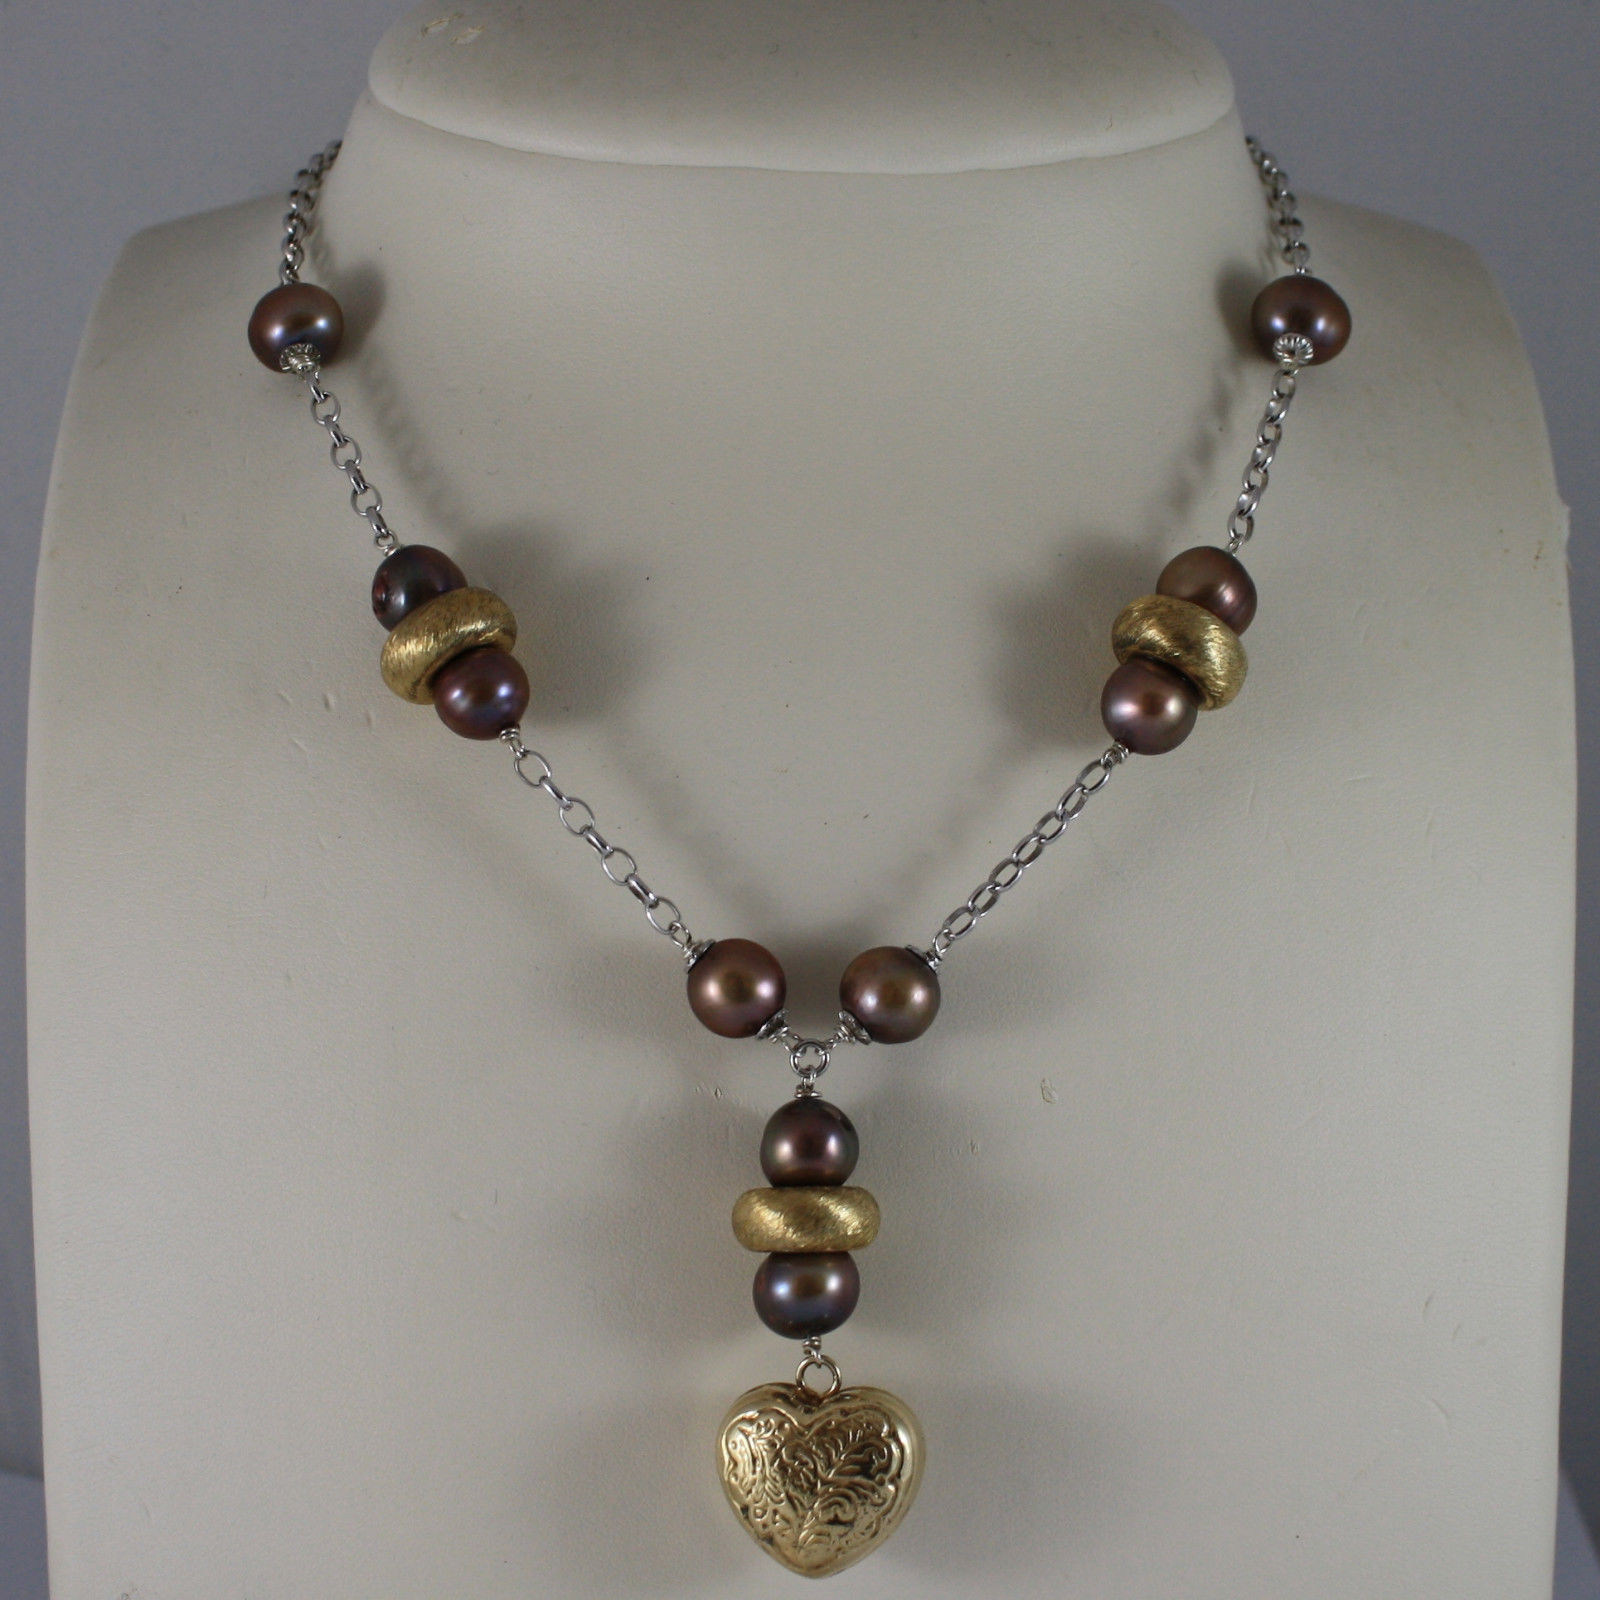 .925 SILVER RHODIUM NECKLACE WITH BROWN PEARLS AND HEART PENDANT